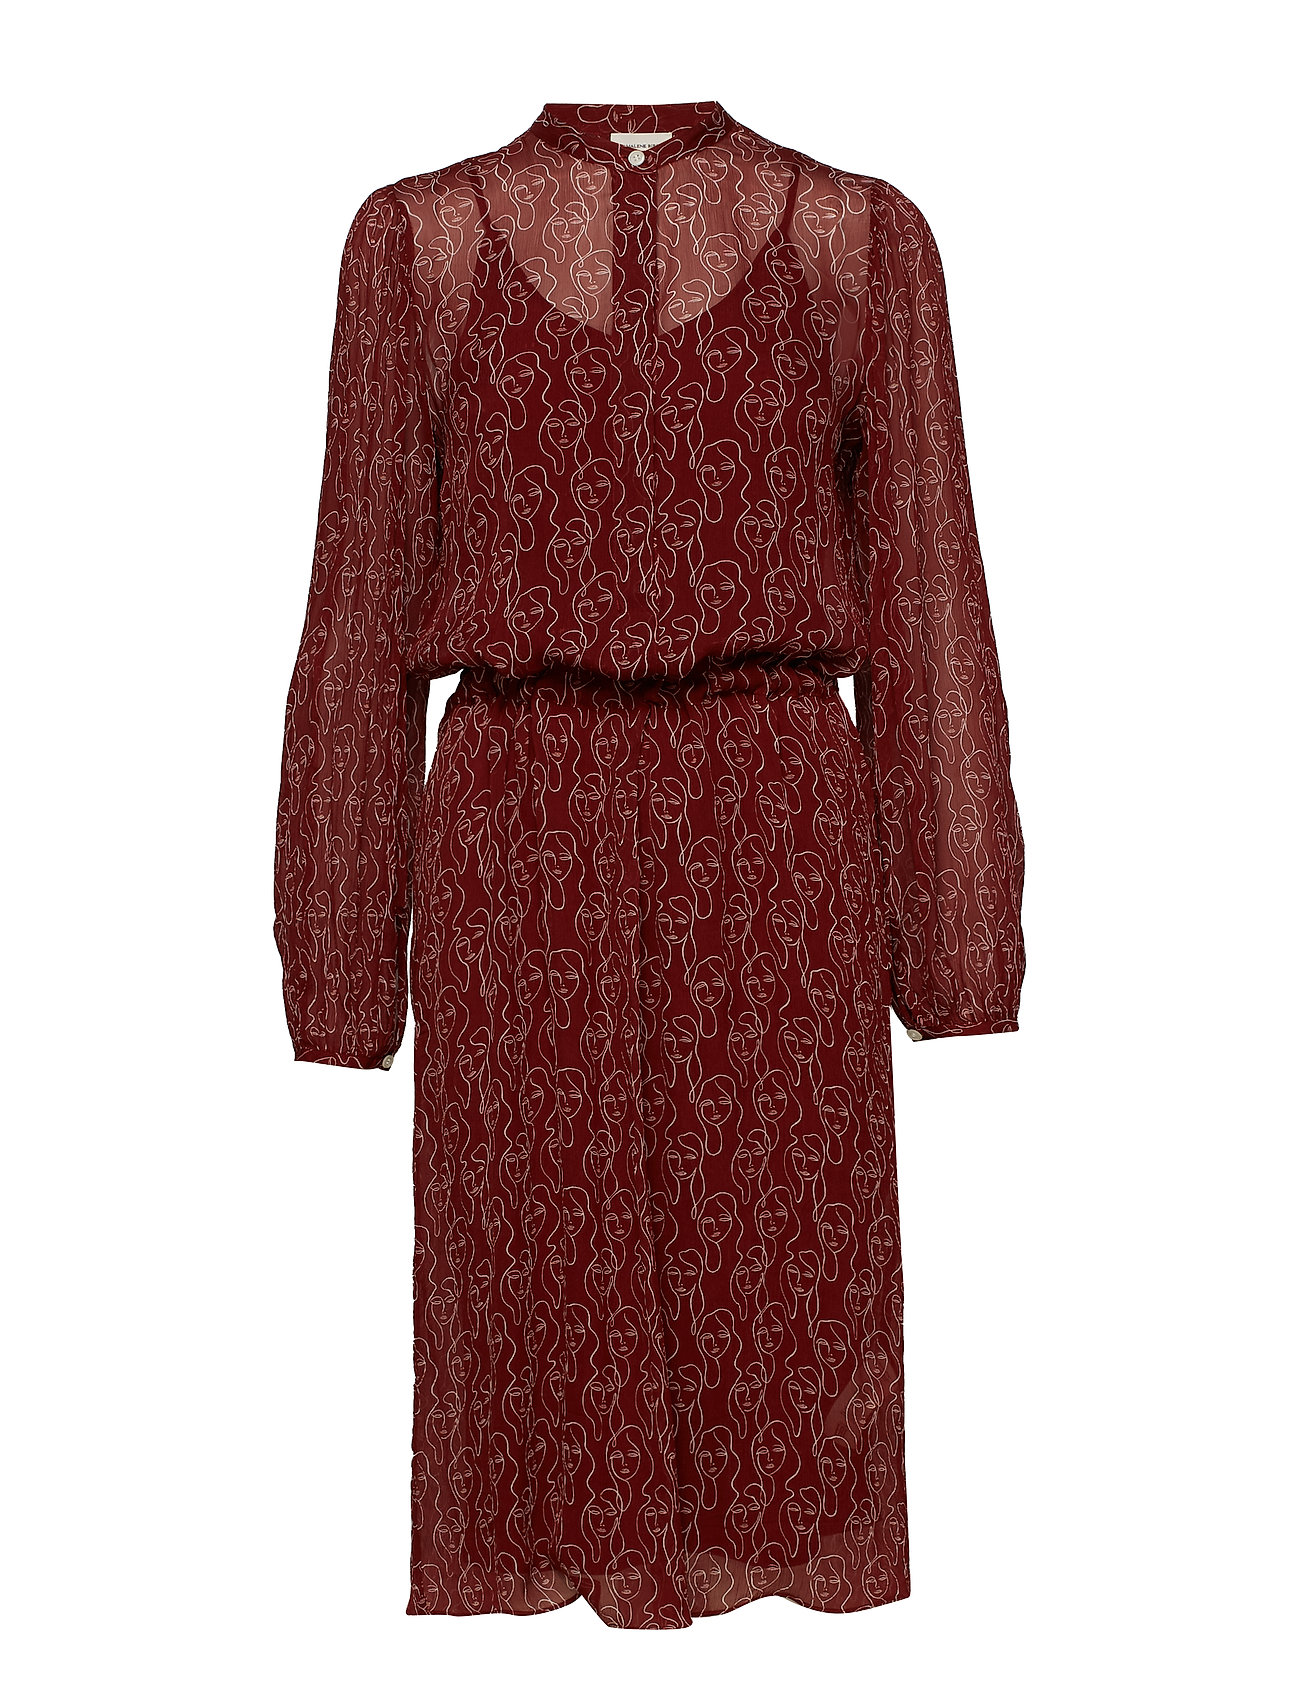 By Malene Birger DRE1028S91 - RED CLAY